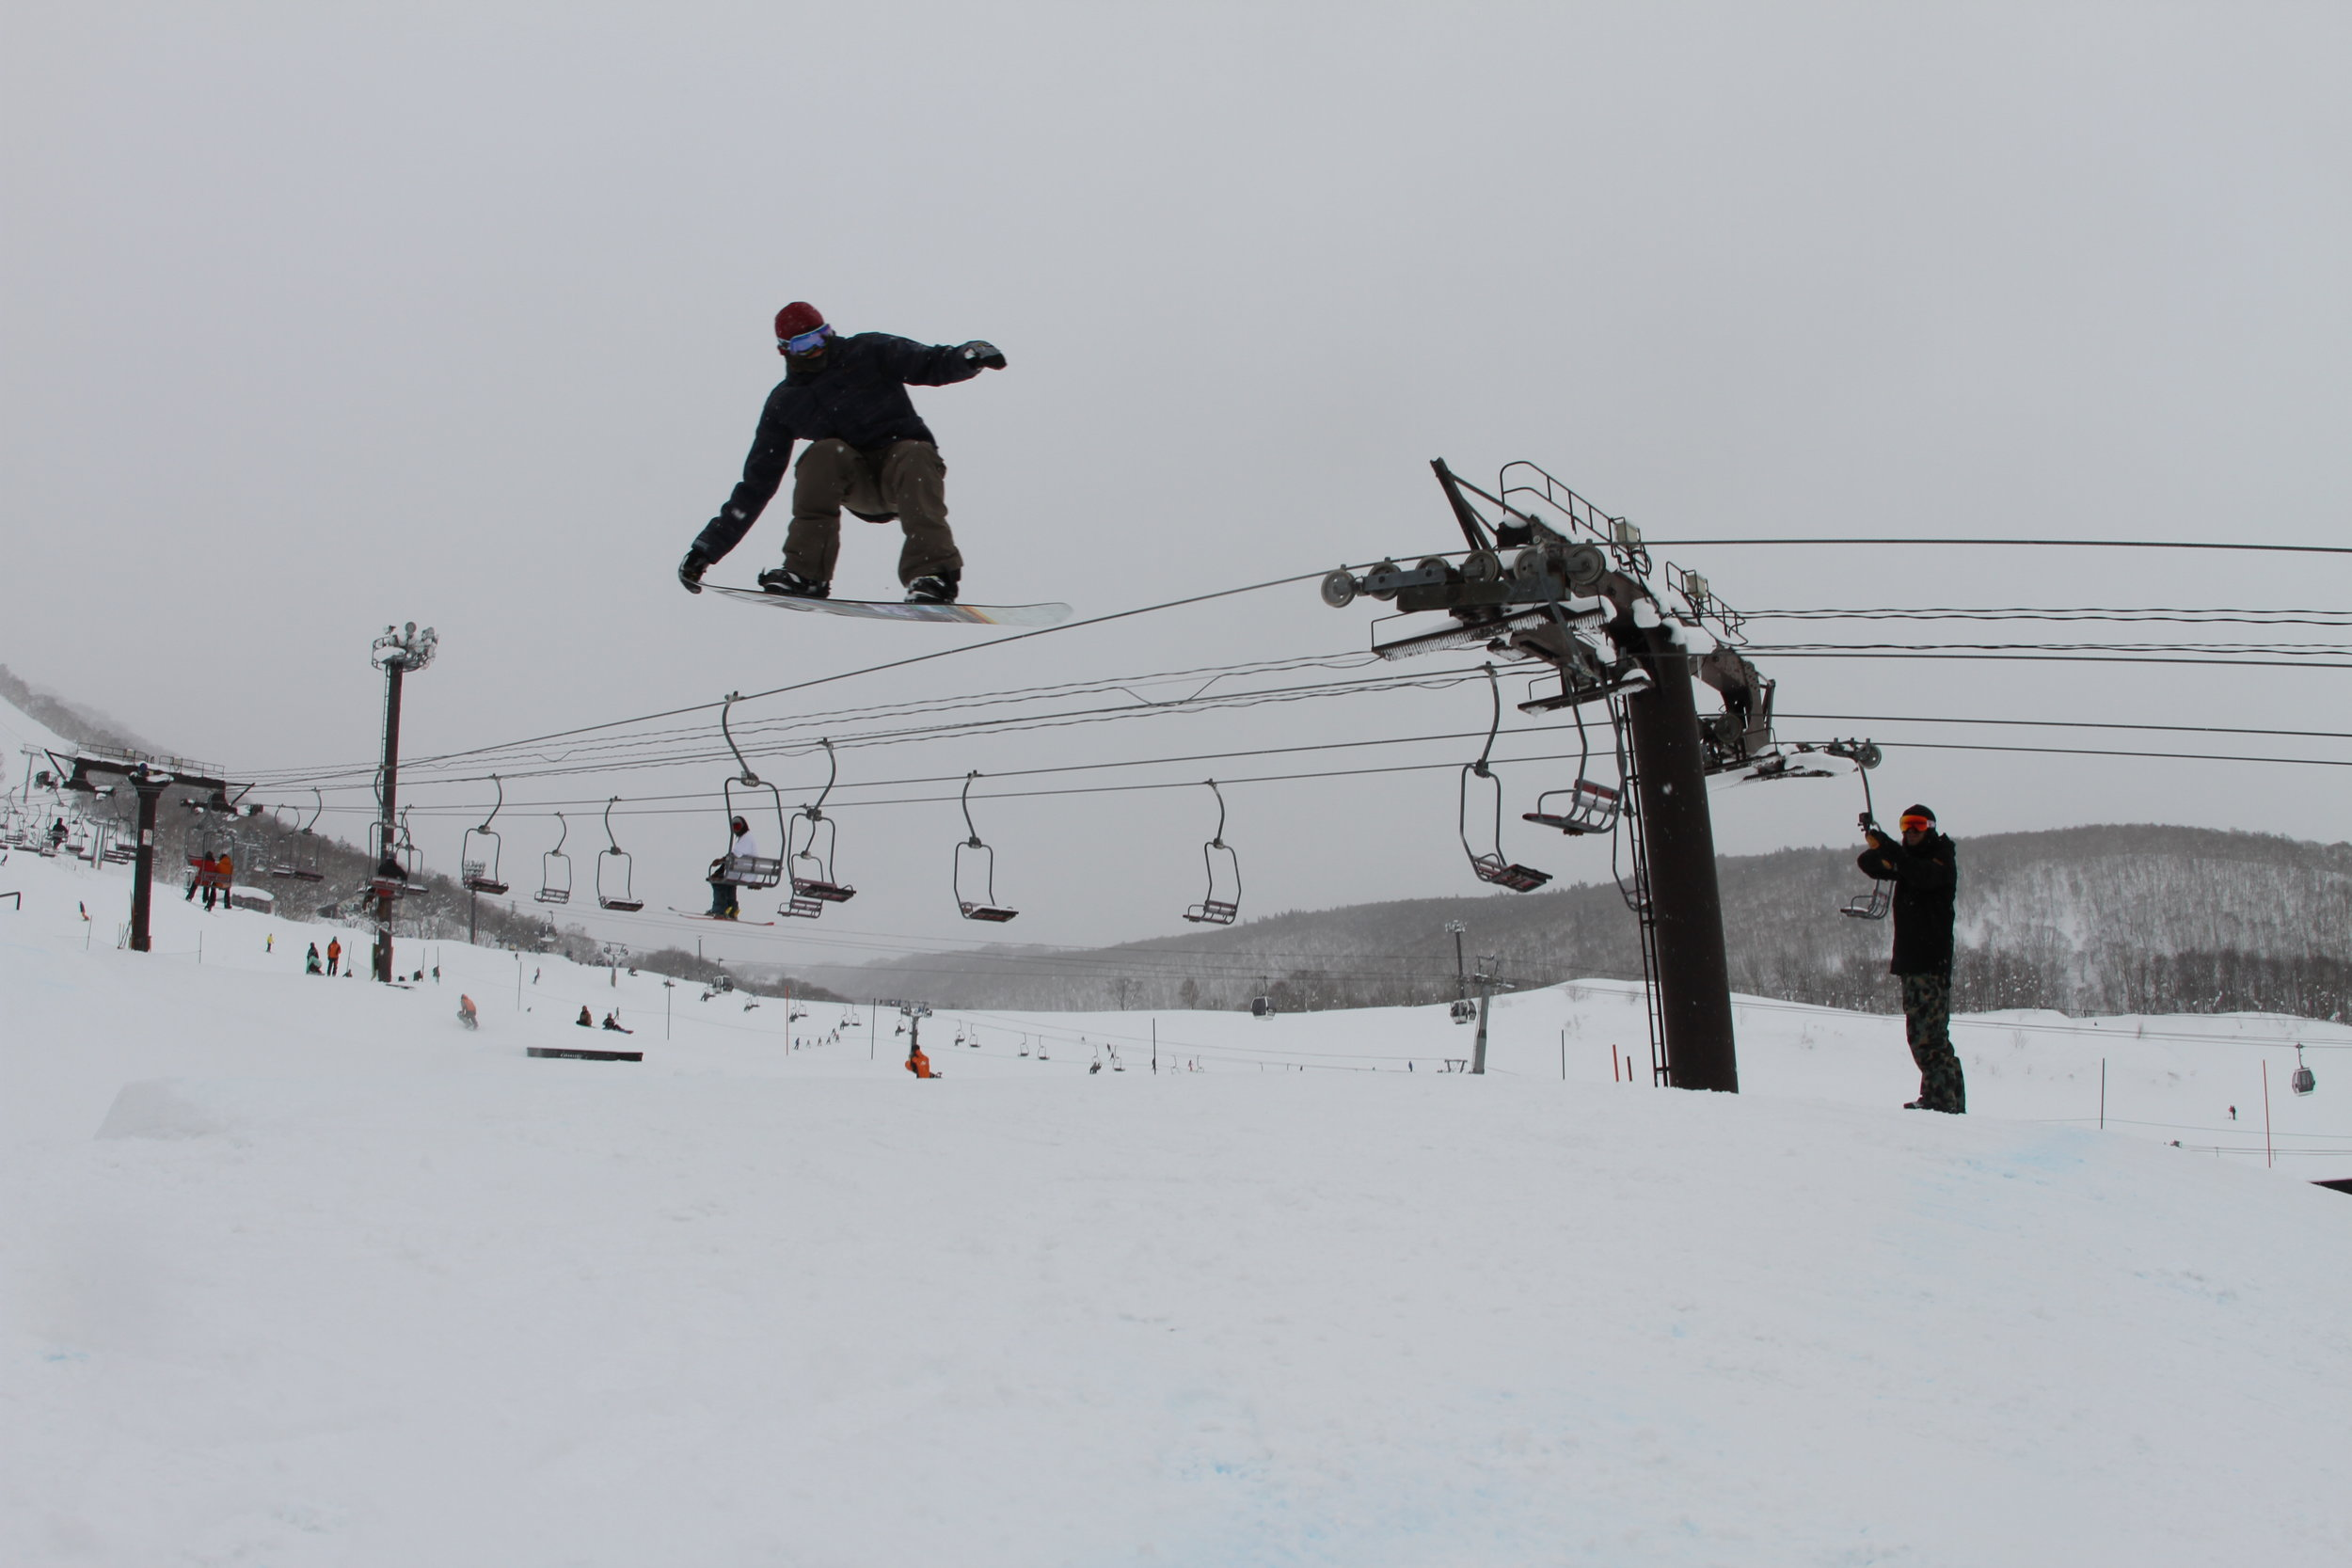 King Park - Hirafu  - Even though we were getting some more amazing powder throughout week two there was definitely a bit more of a focus on Park. With crew hitting the larger Park jumps for the first time and new tricks been put down on the rails the vibes were high.